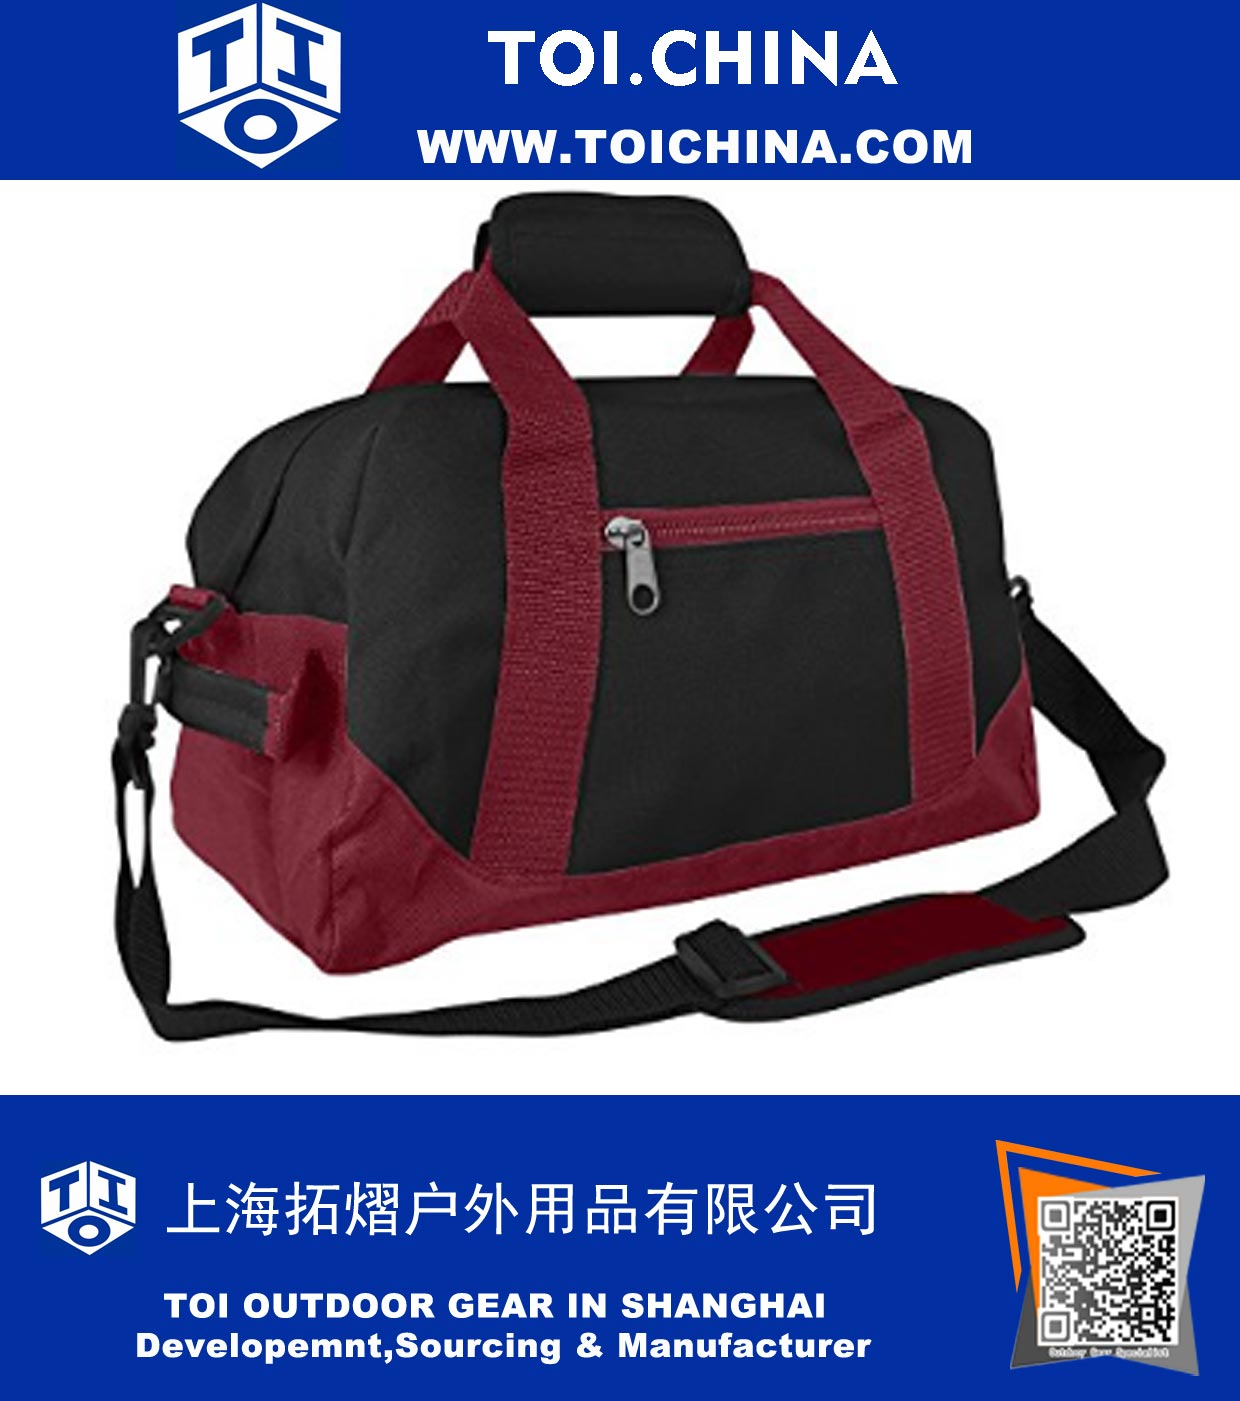 16964d6f17aea7 14 Inch Small Duffle Bag Two Toned Gym Travel Bag, TY-QC013 ...